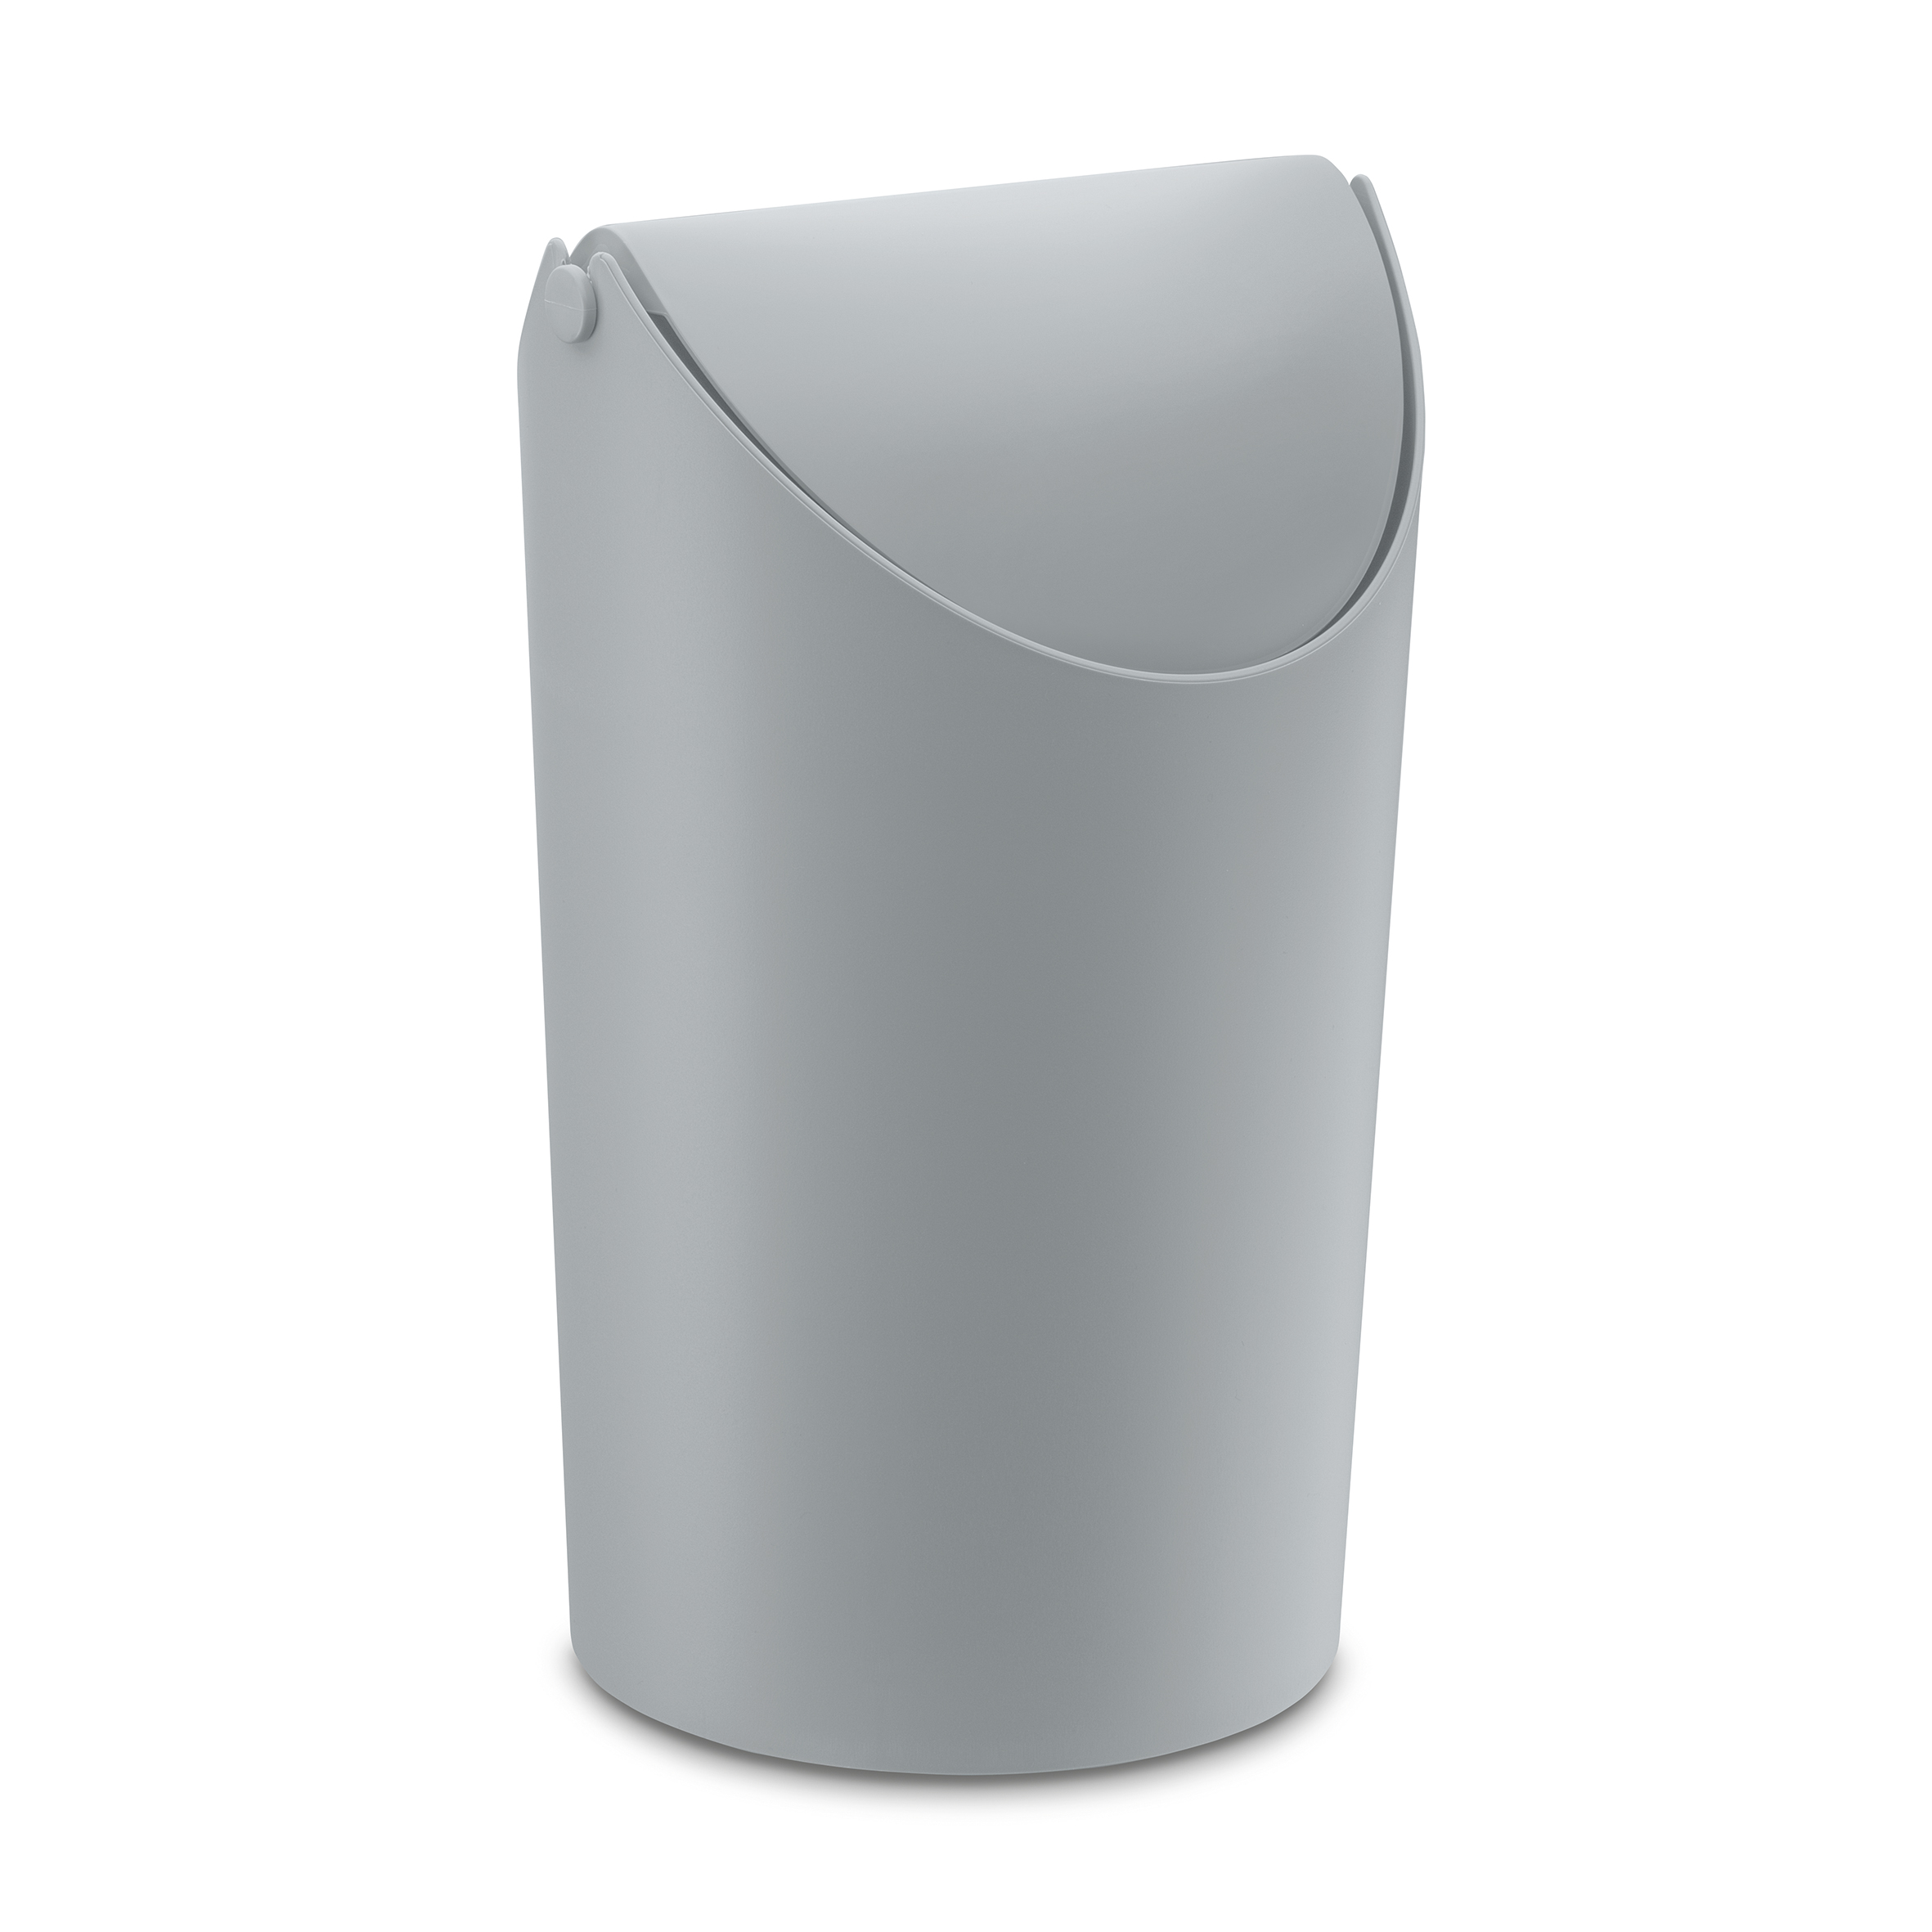 Koziol ideas for friends gmbh jim wastebasket 3 25l cool grey - Cool wastebaskets ...